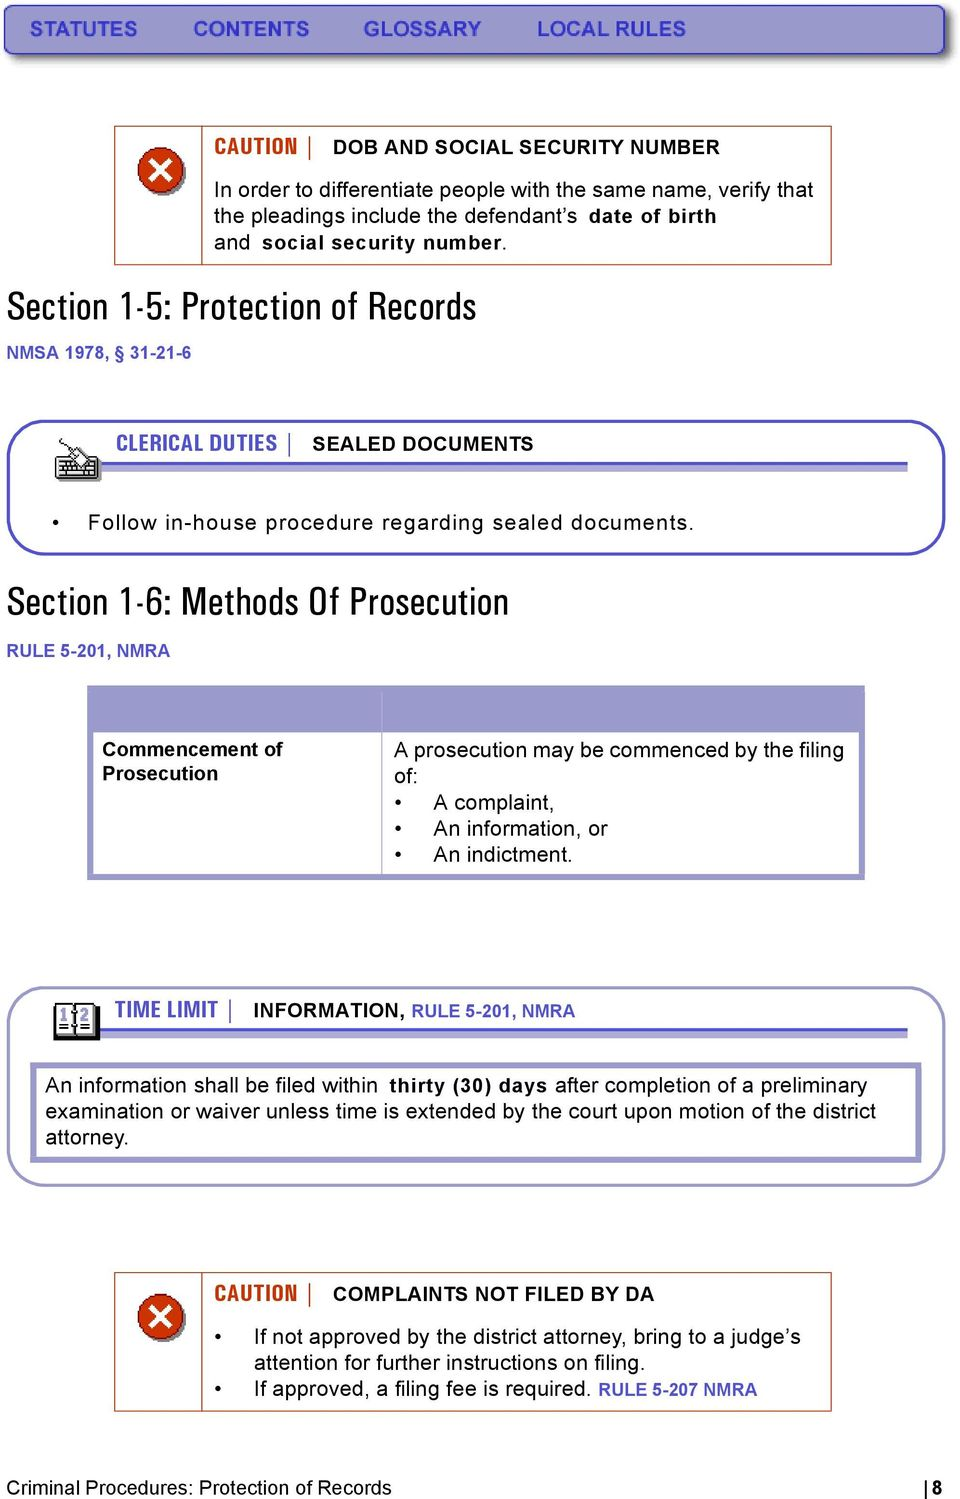 Section 1-6: Methods Of Prosecution RULE 5-201, NMRA Commencement of Prosecution A prosecution may be commenced by the filing of: A complaint, An information, or An indictment.